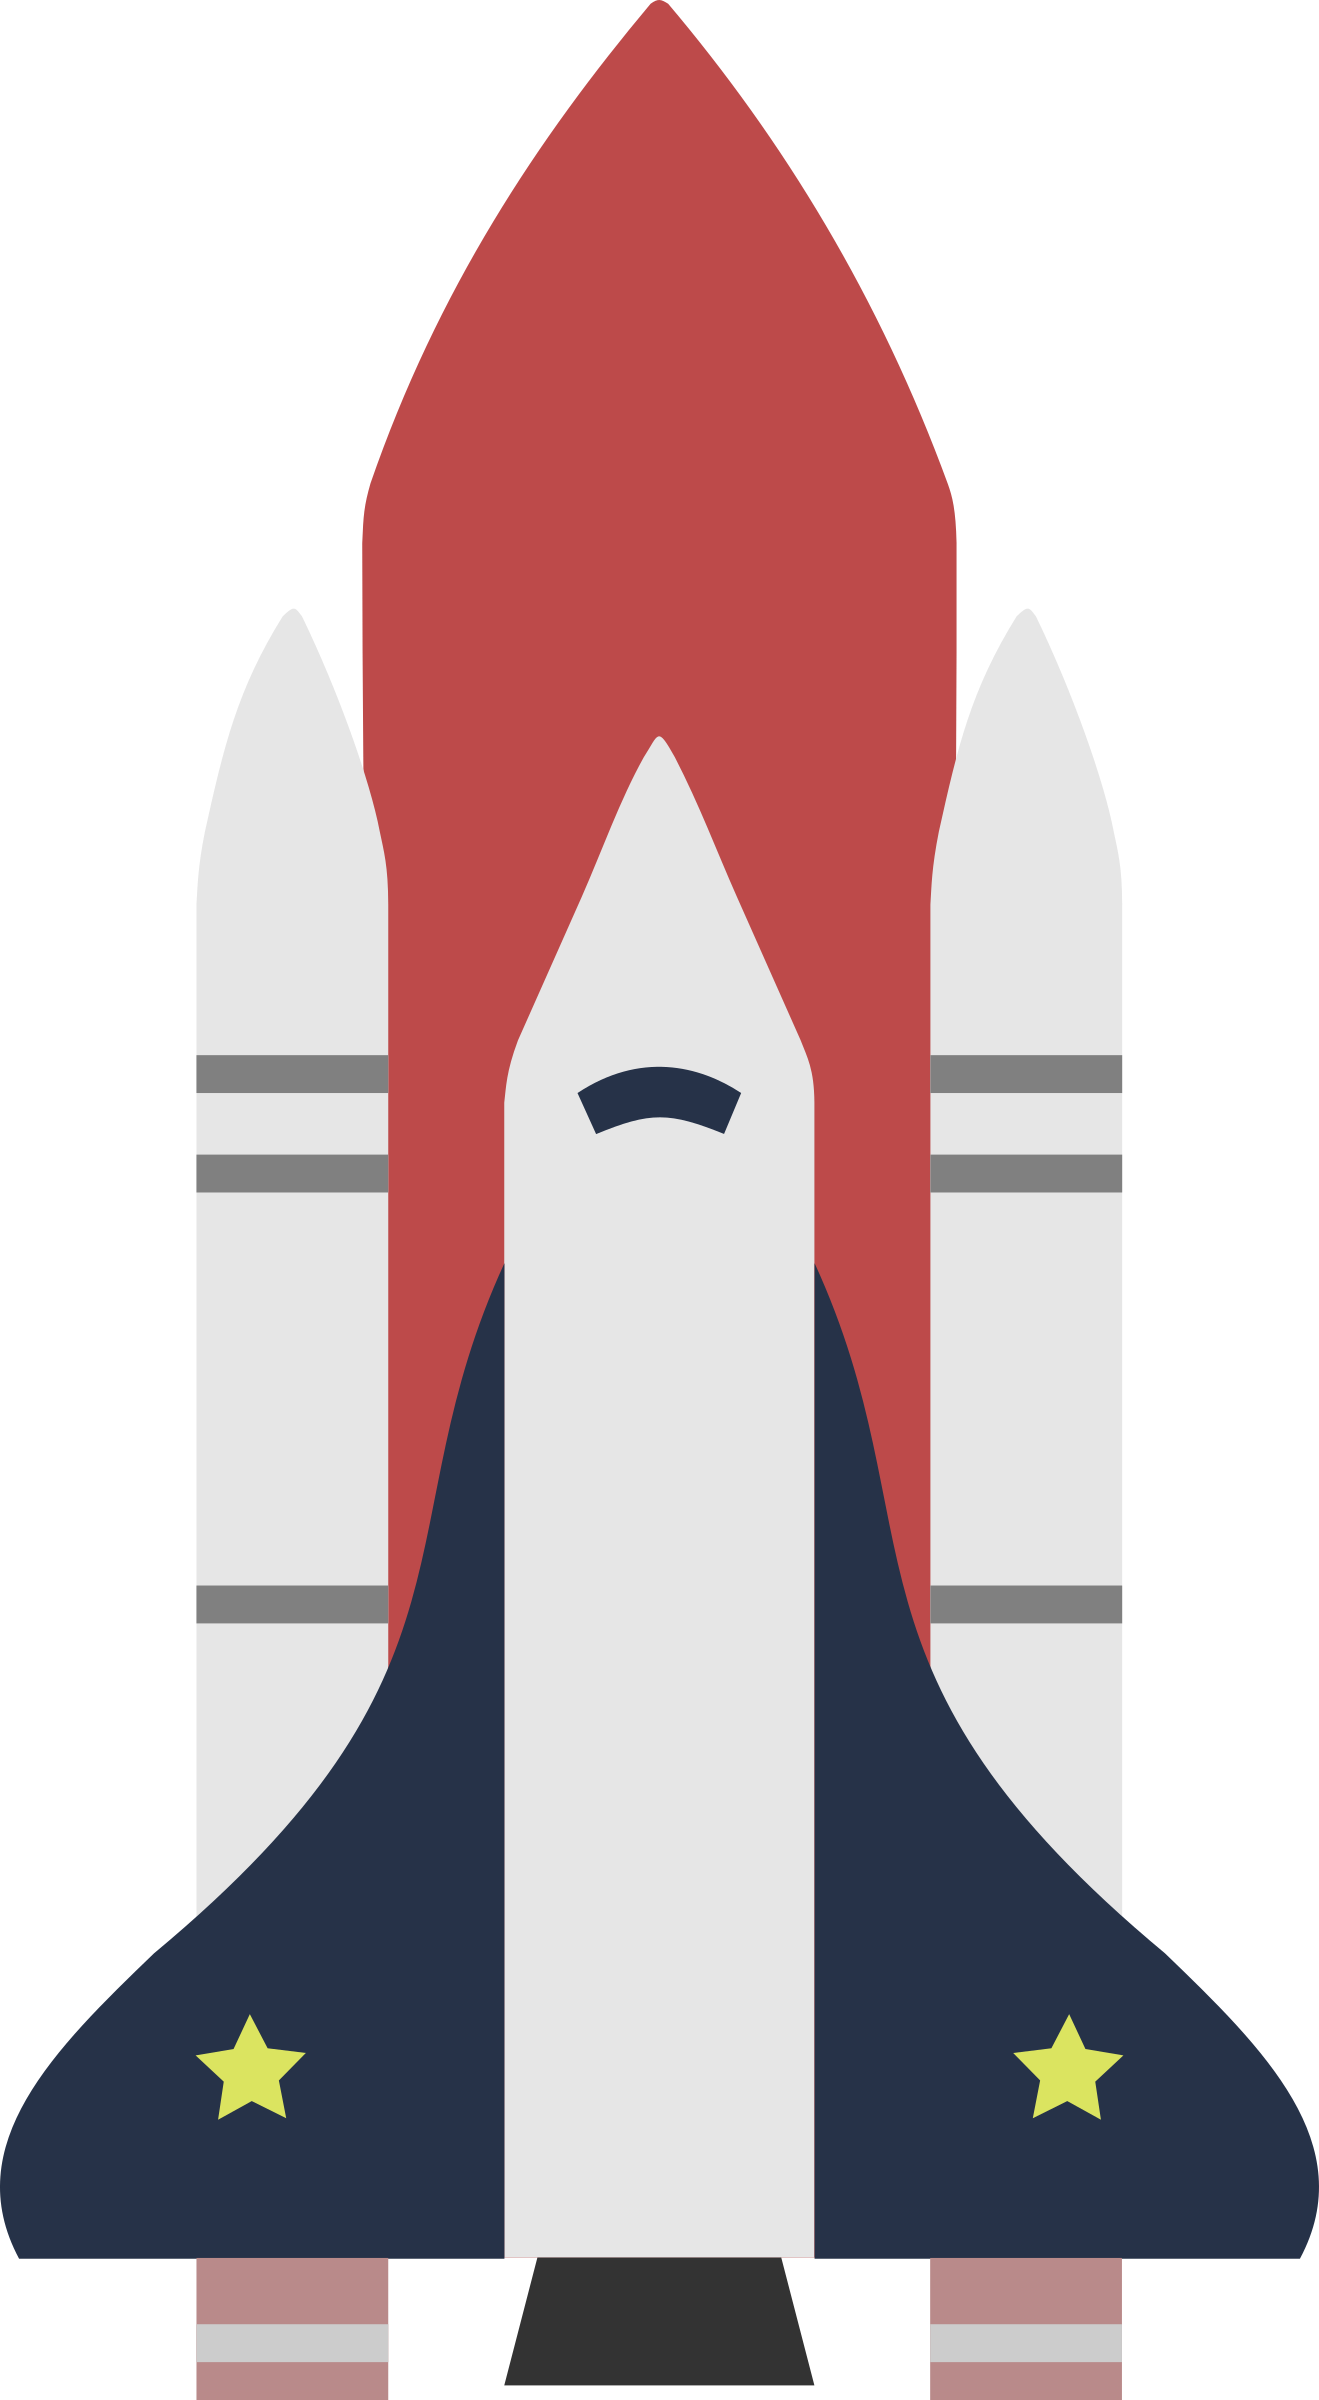 Space Shuttle by basicavisual